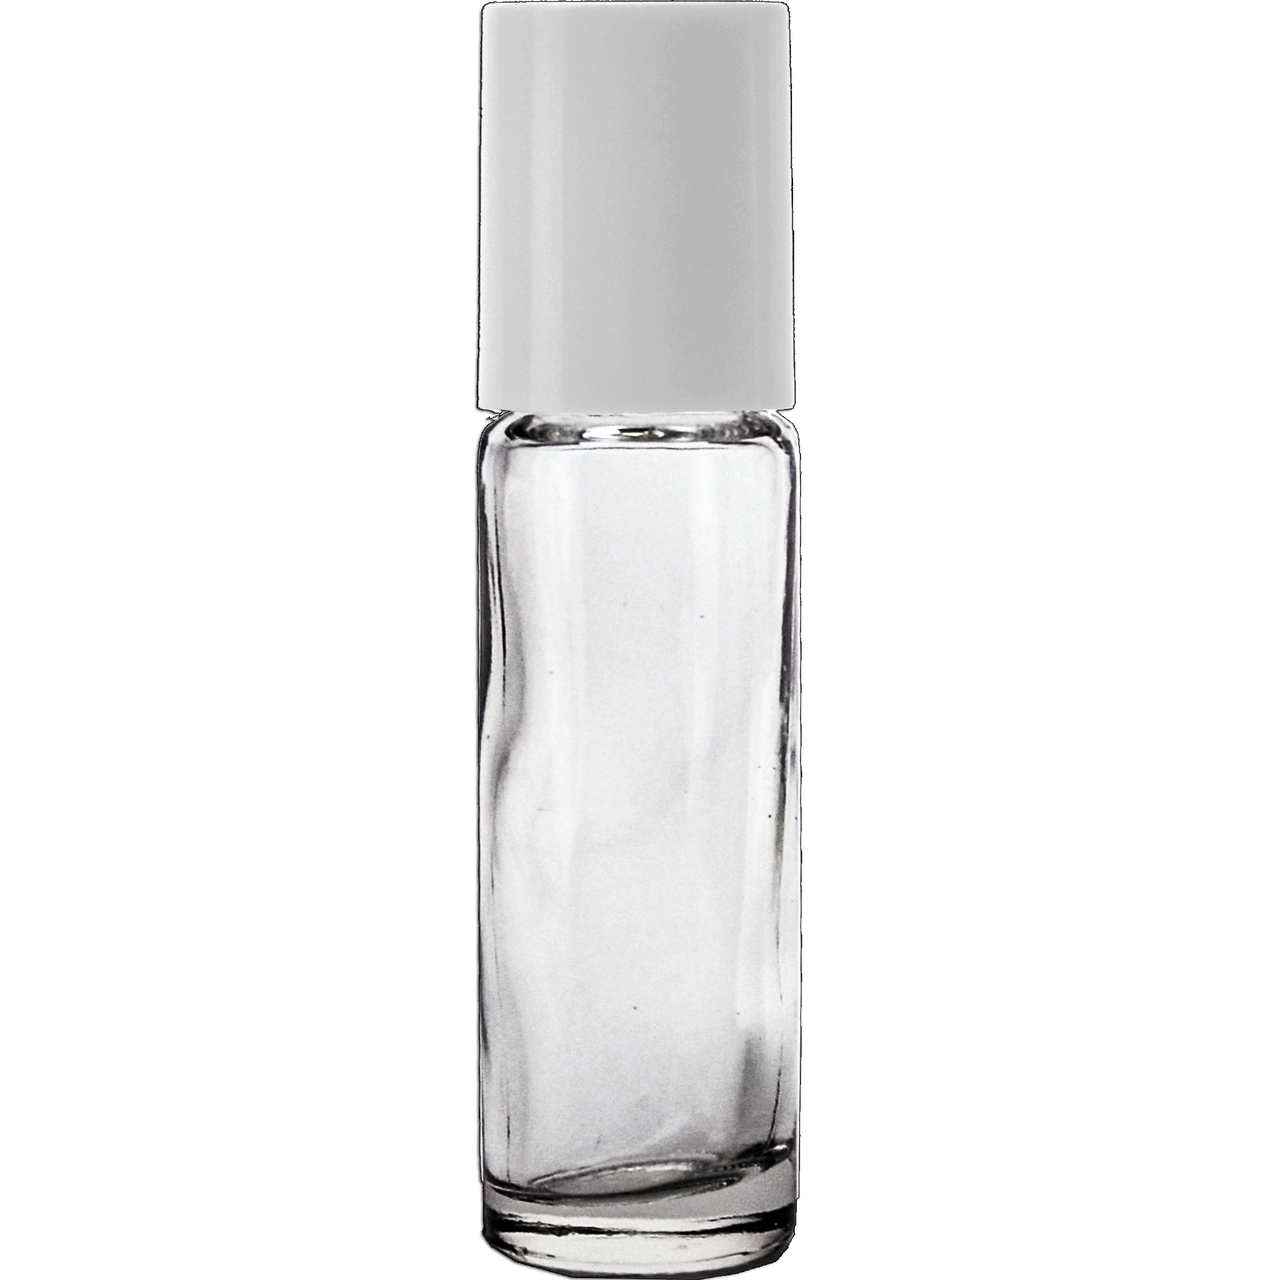 Clear bottle png. Oils ml roller pieces